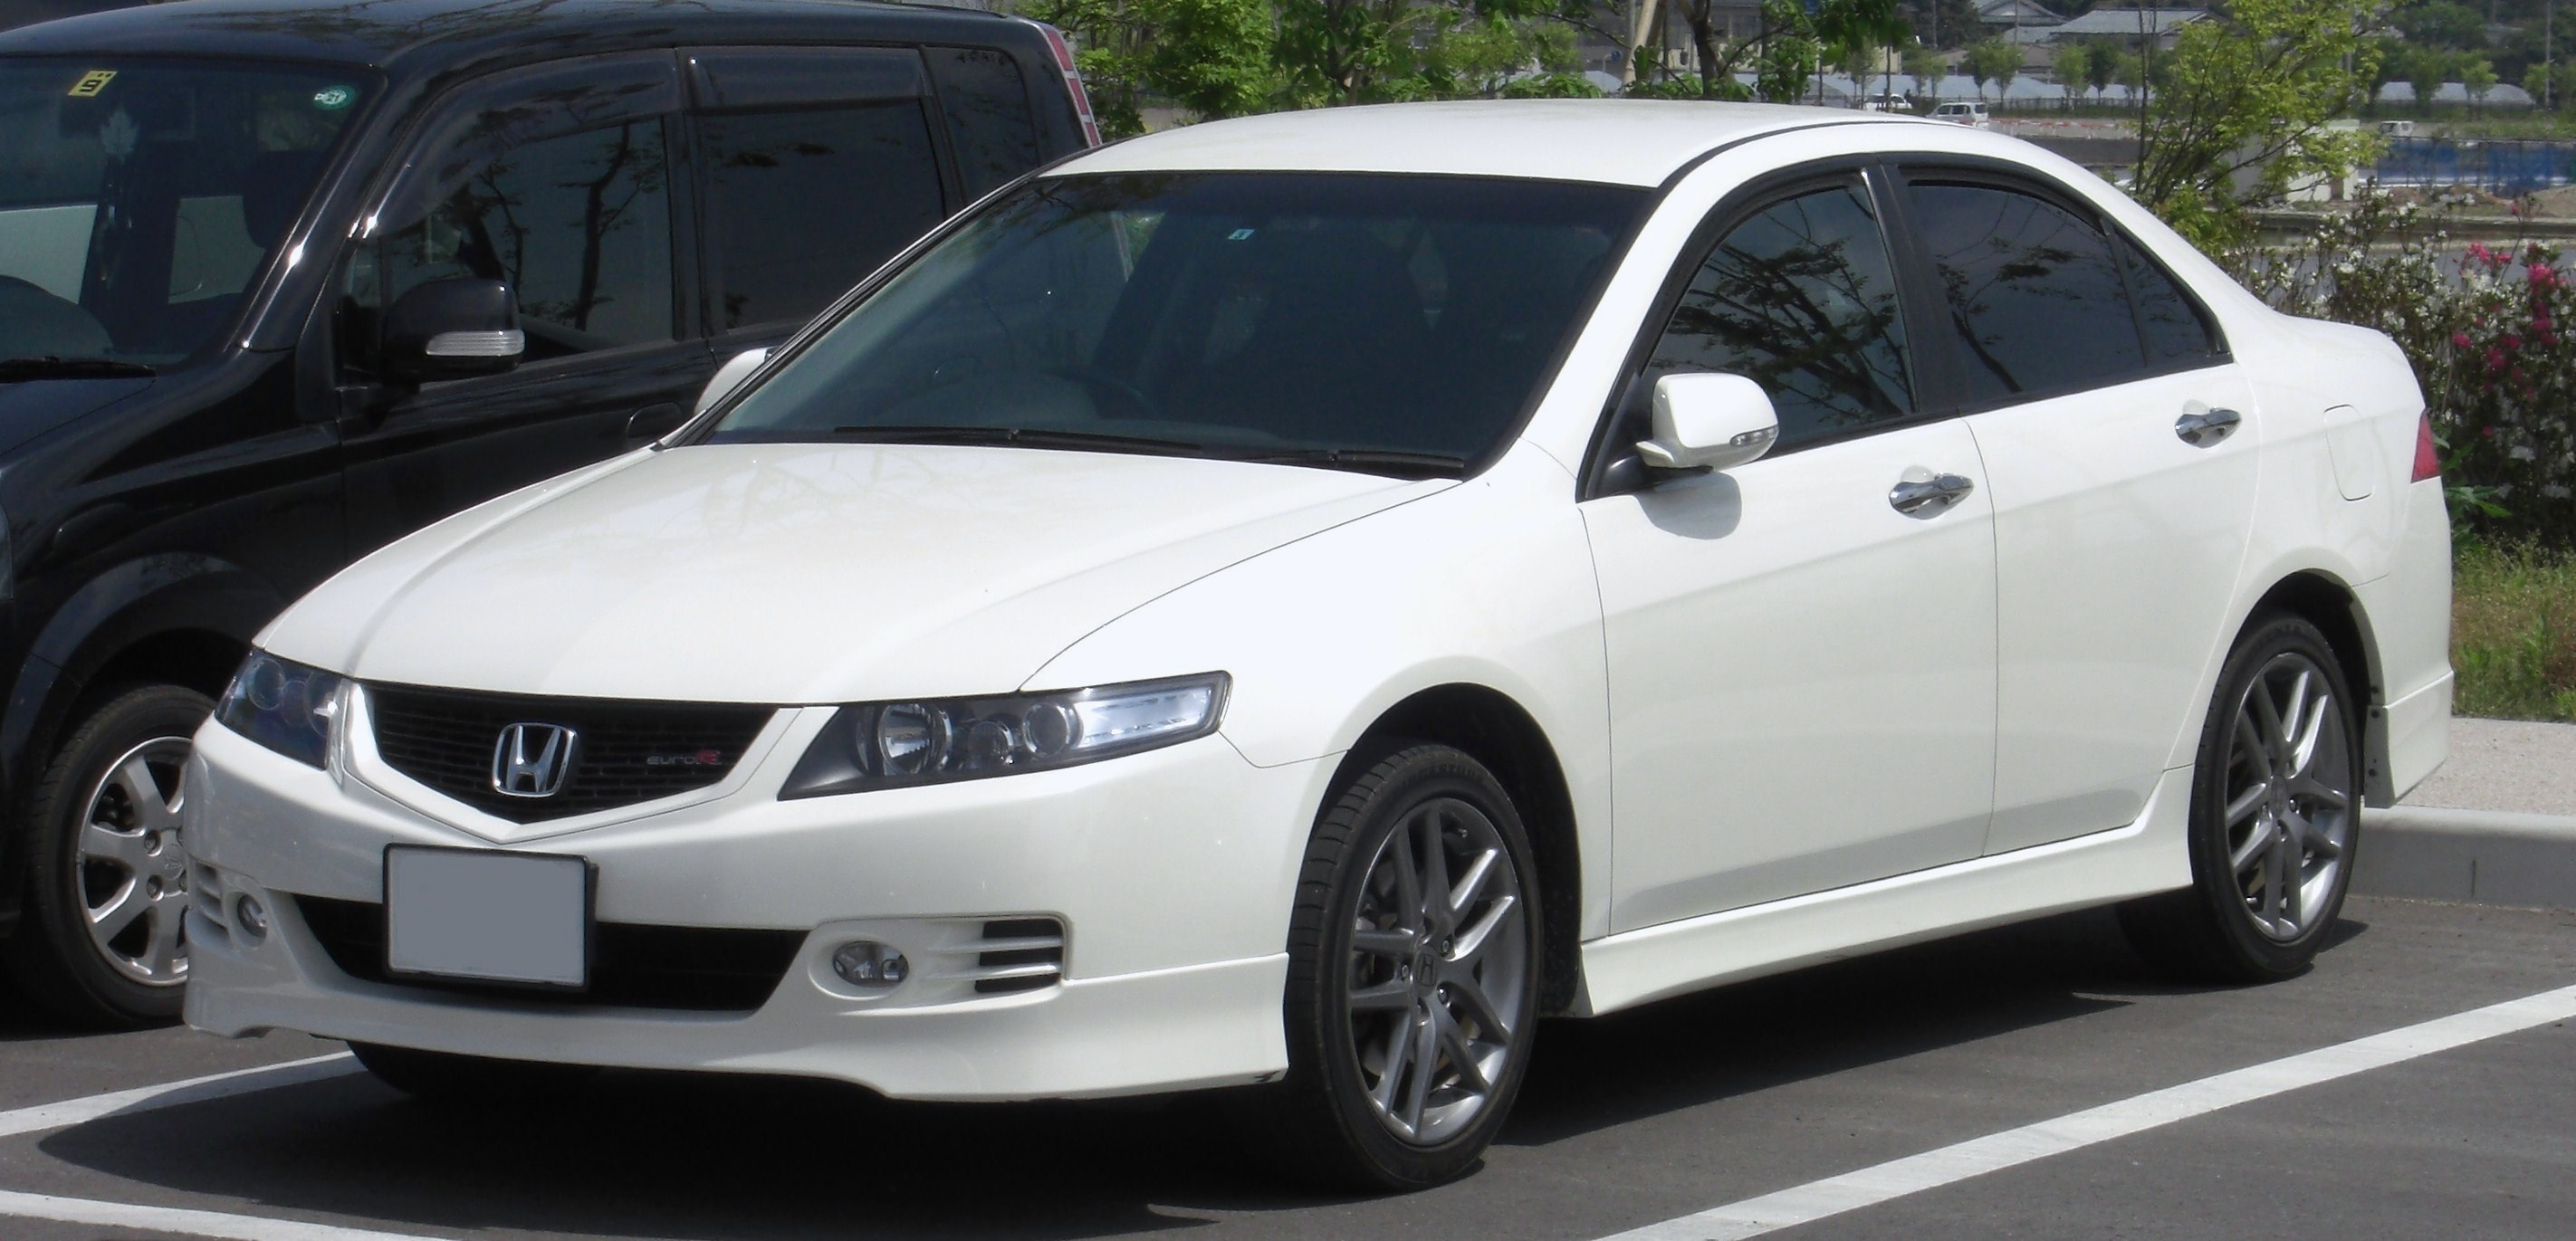 acura tsx wagon manual with 2014 Accord Euro R on 2014 besides Renault Duster as well 2014 Accord Euro R as well Jeep Wrangler Trunk Box Free Engine Image For besides 2013.